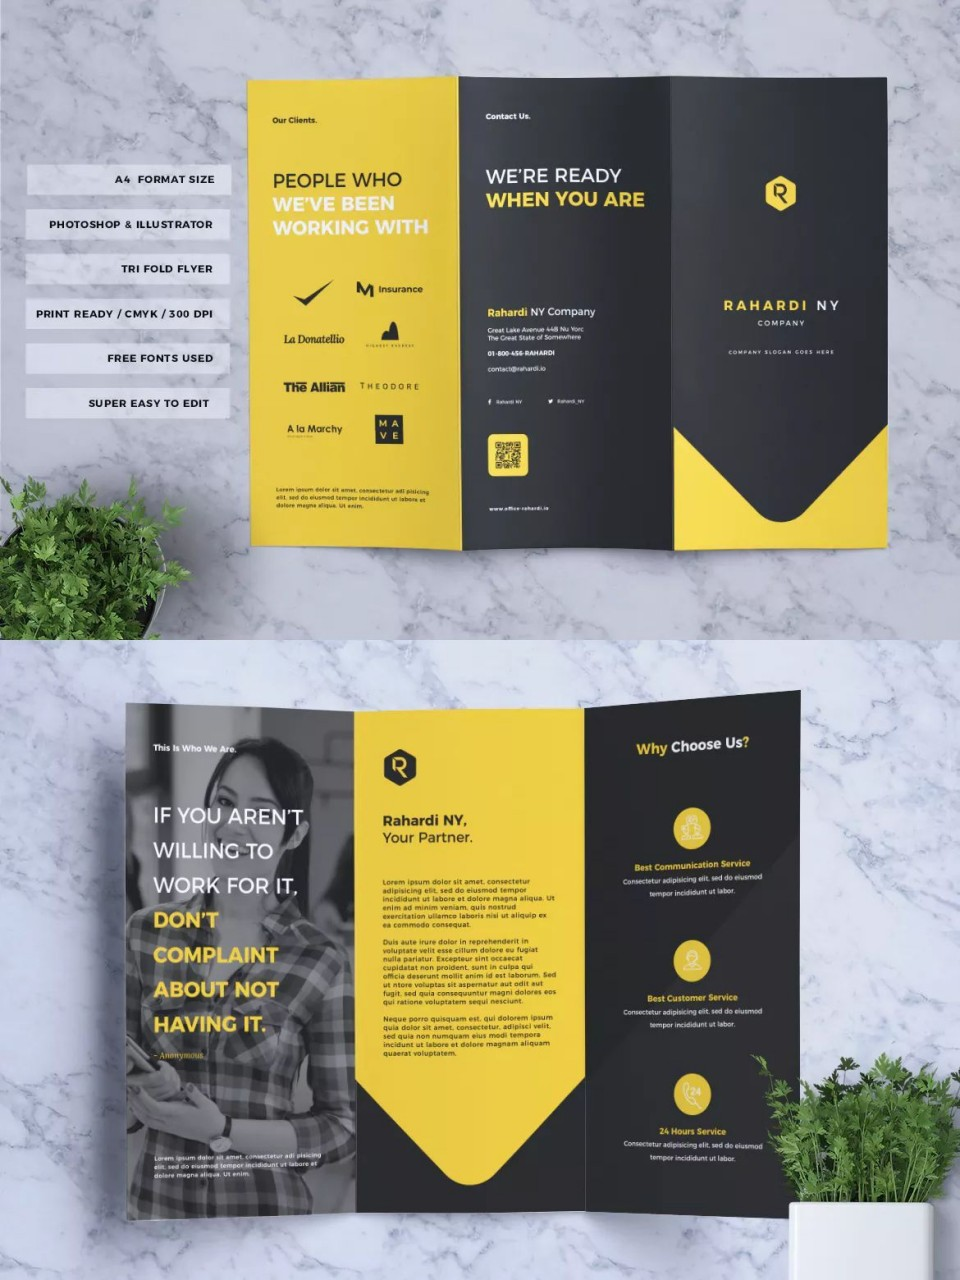 005 Fearsome Adobe Photoshop Brochure Template Free Download Design 960